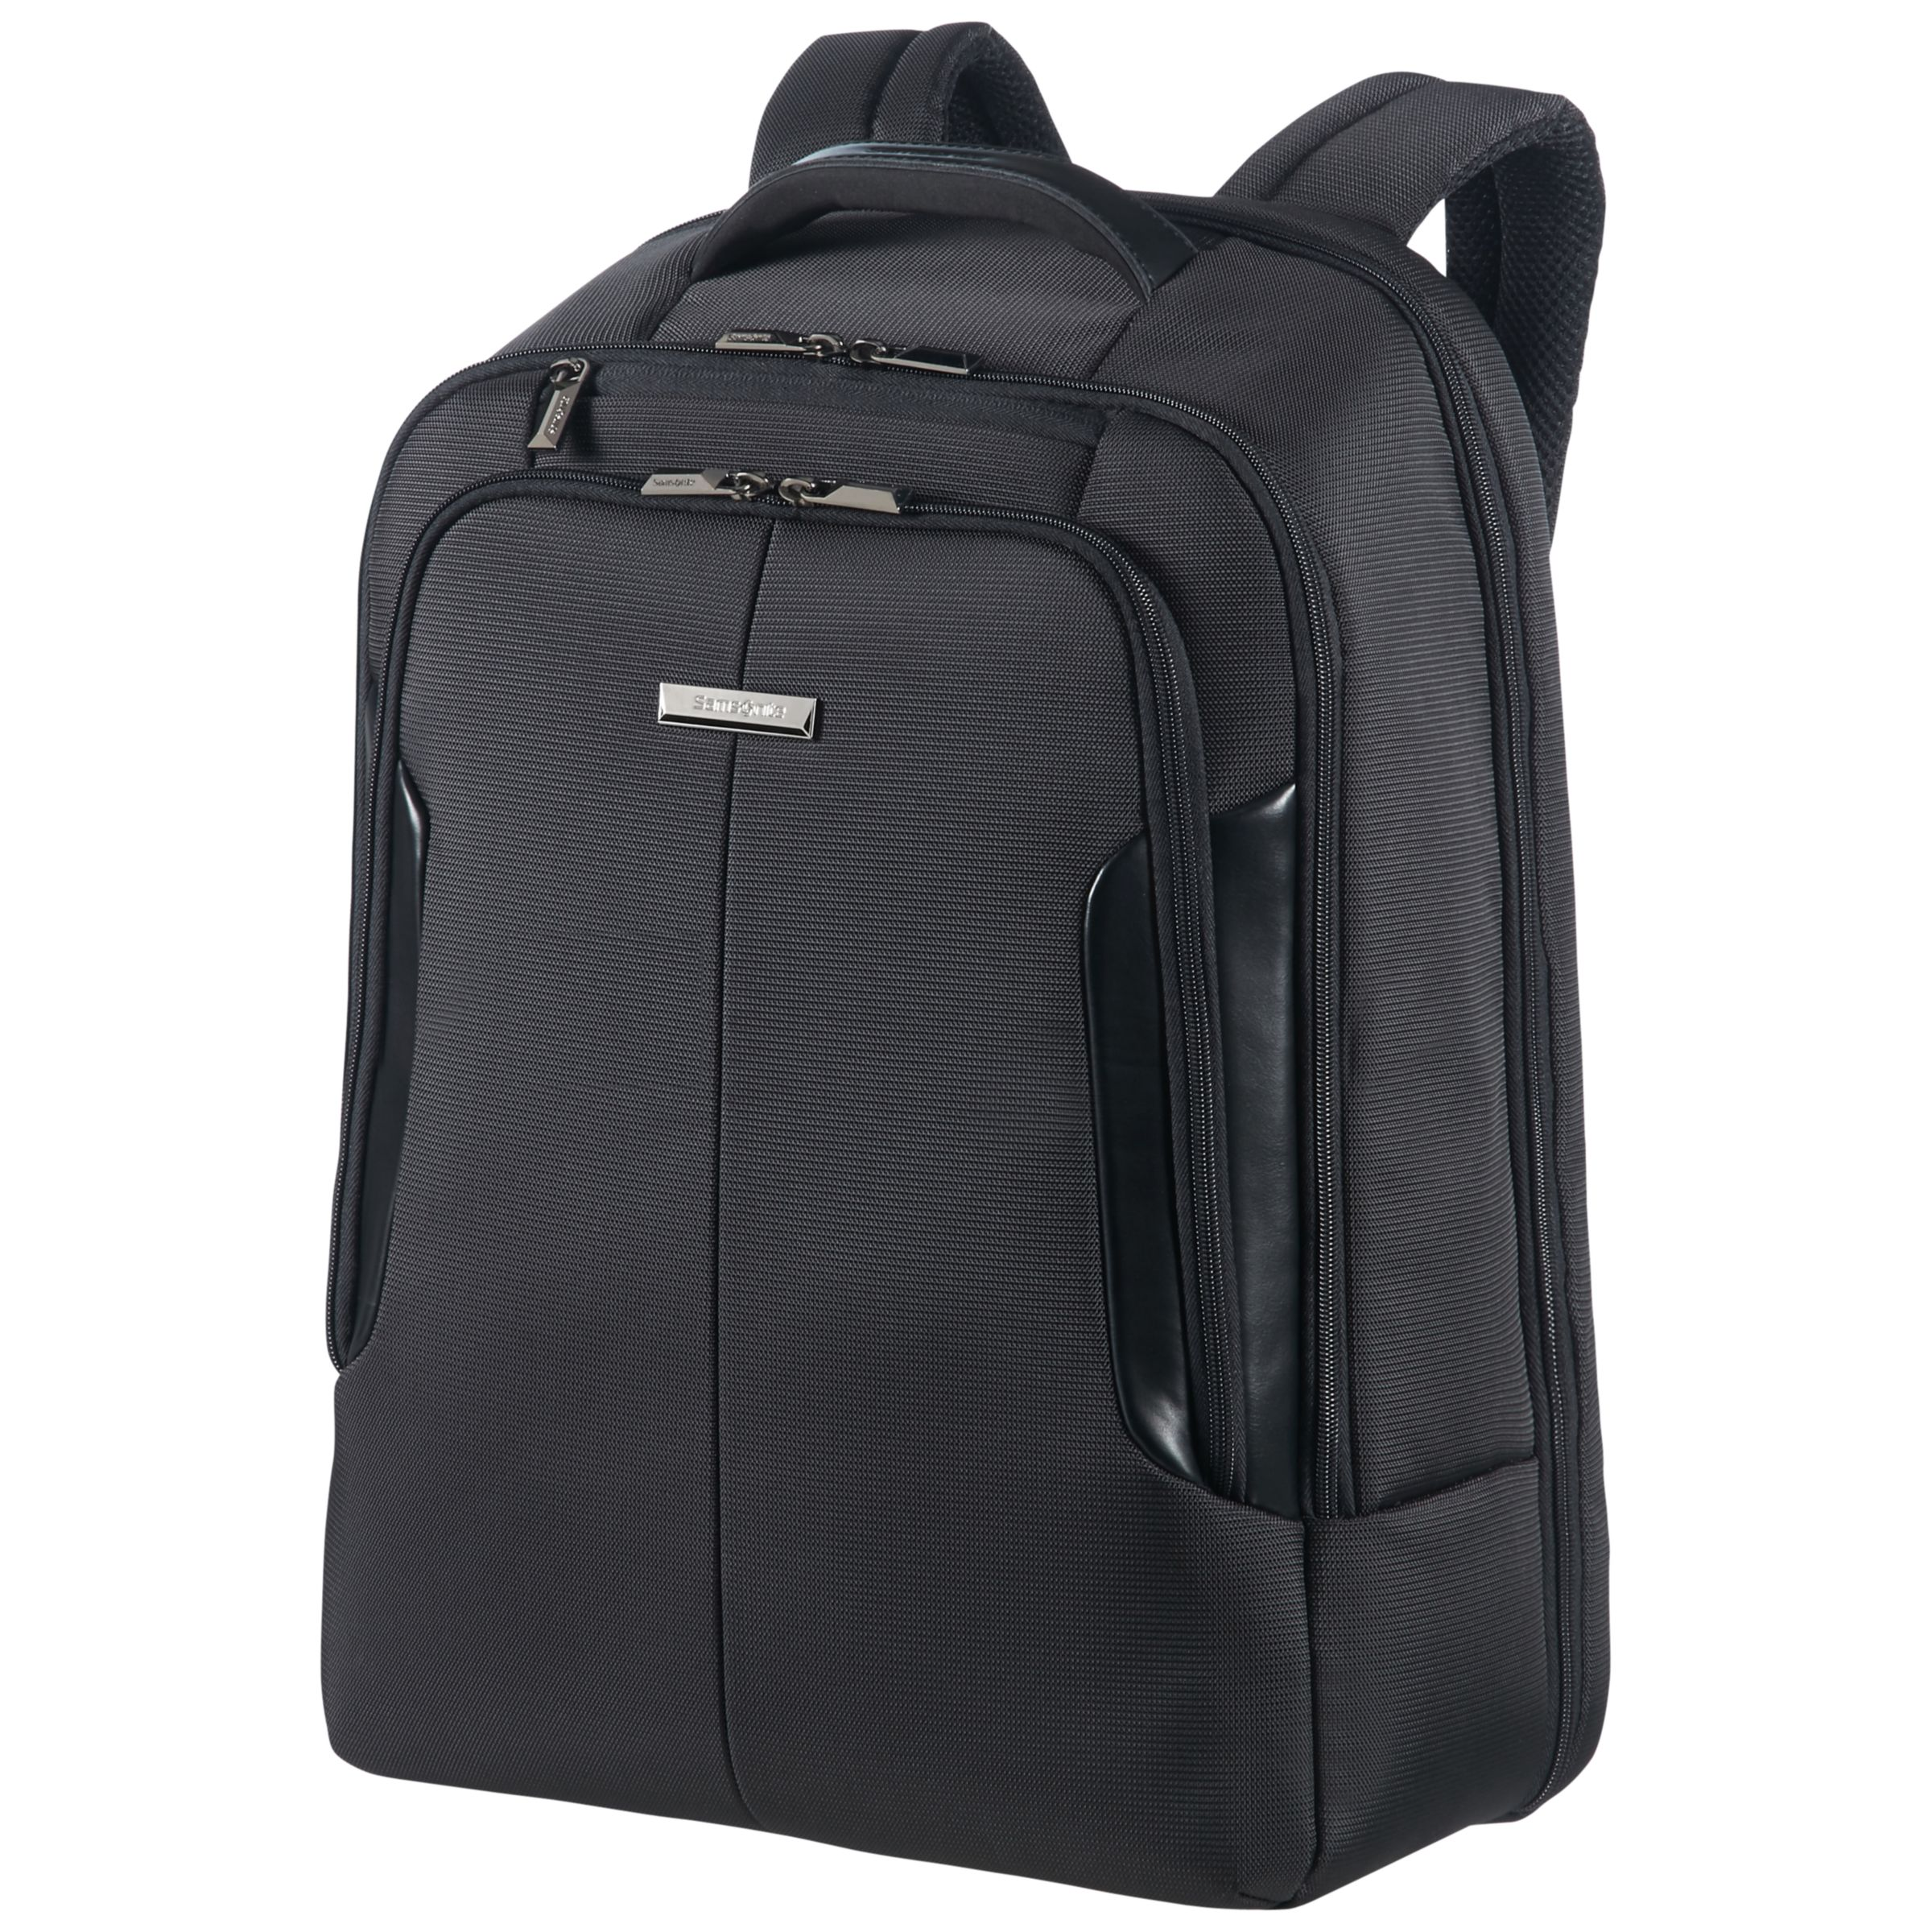 Samsonite Samsonite XBR 17 Laptop Backpack, Black